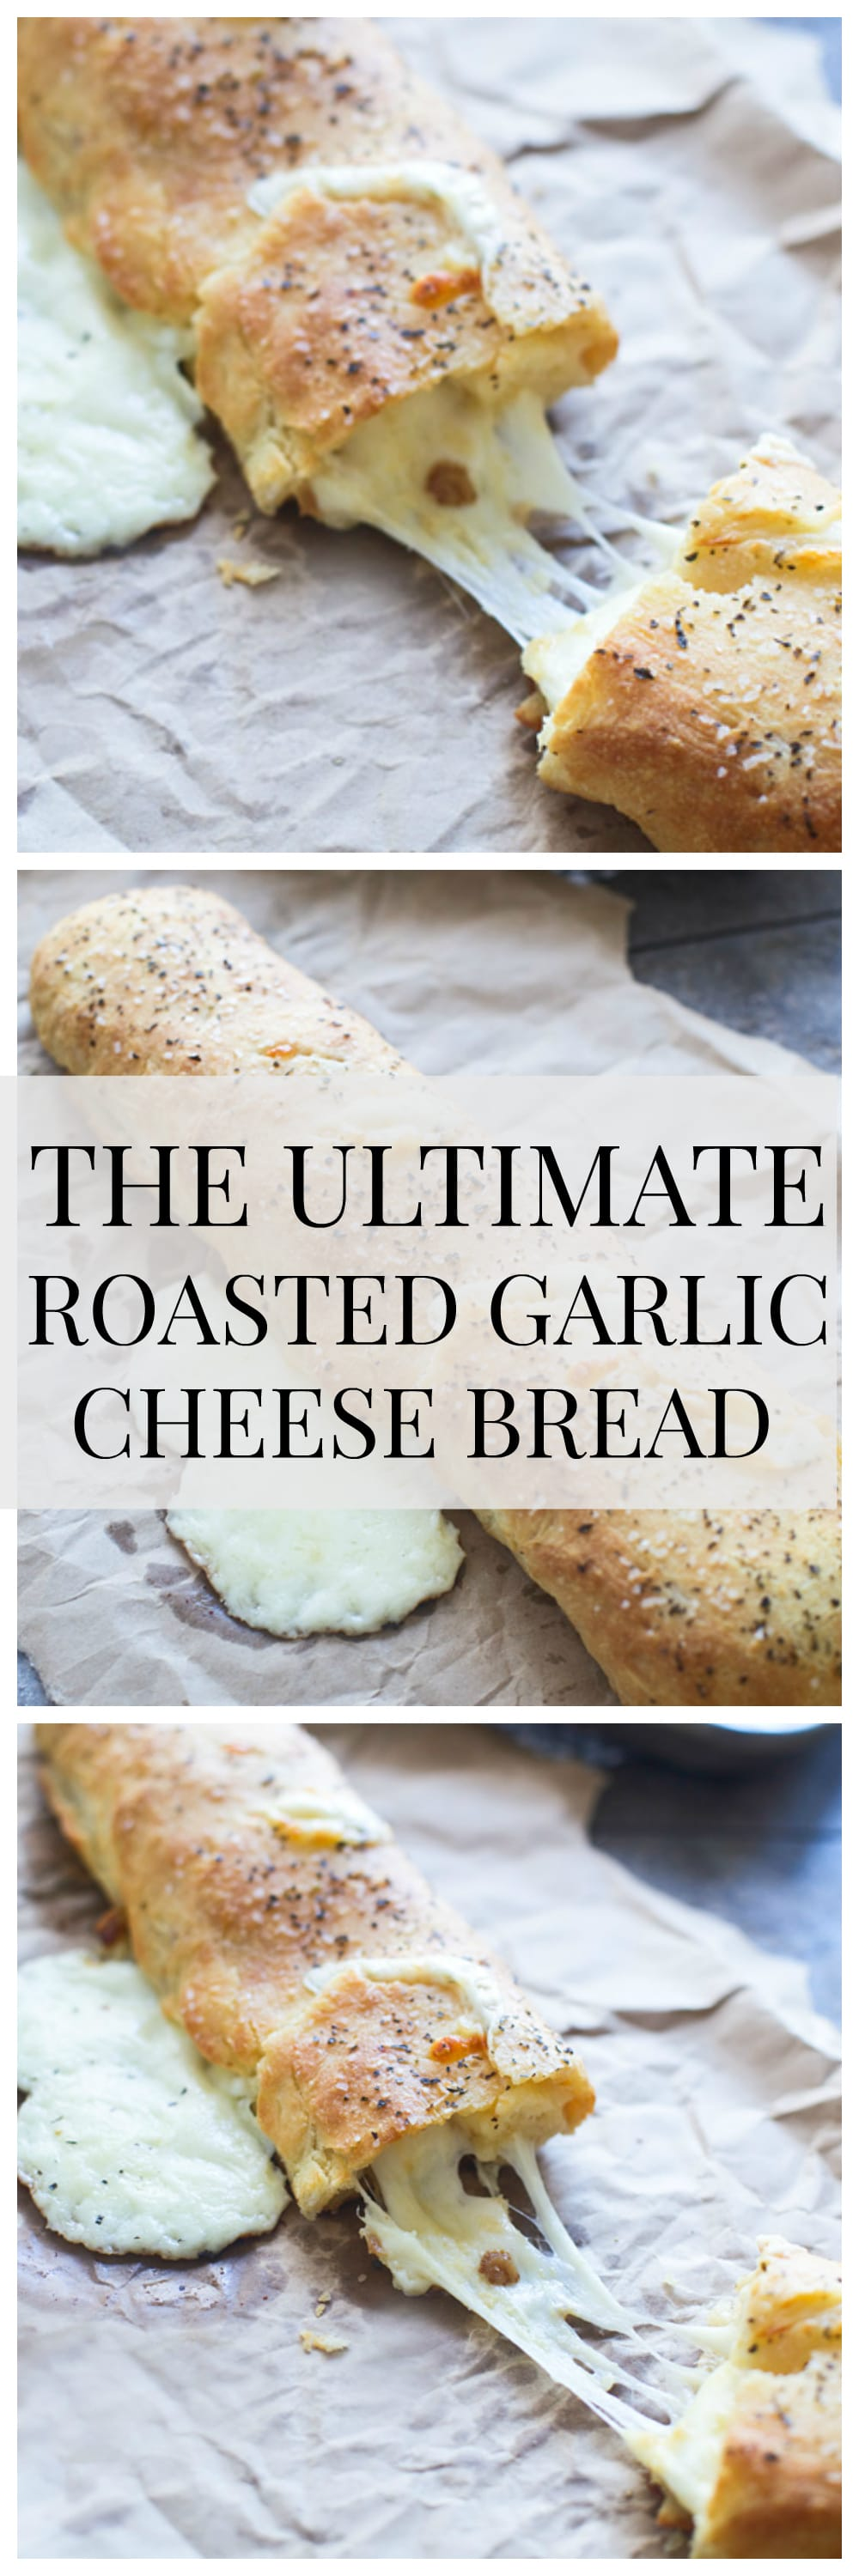 Roasted Garlic Cheesy Bread